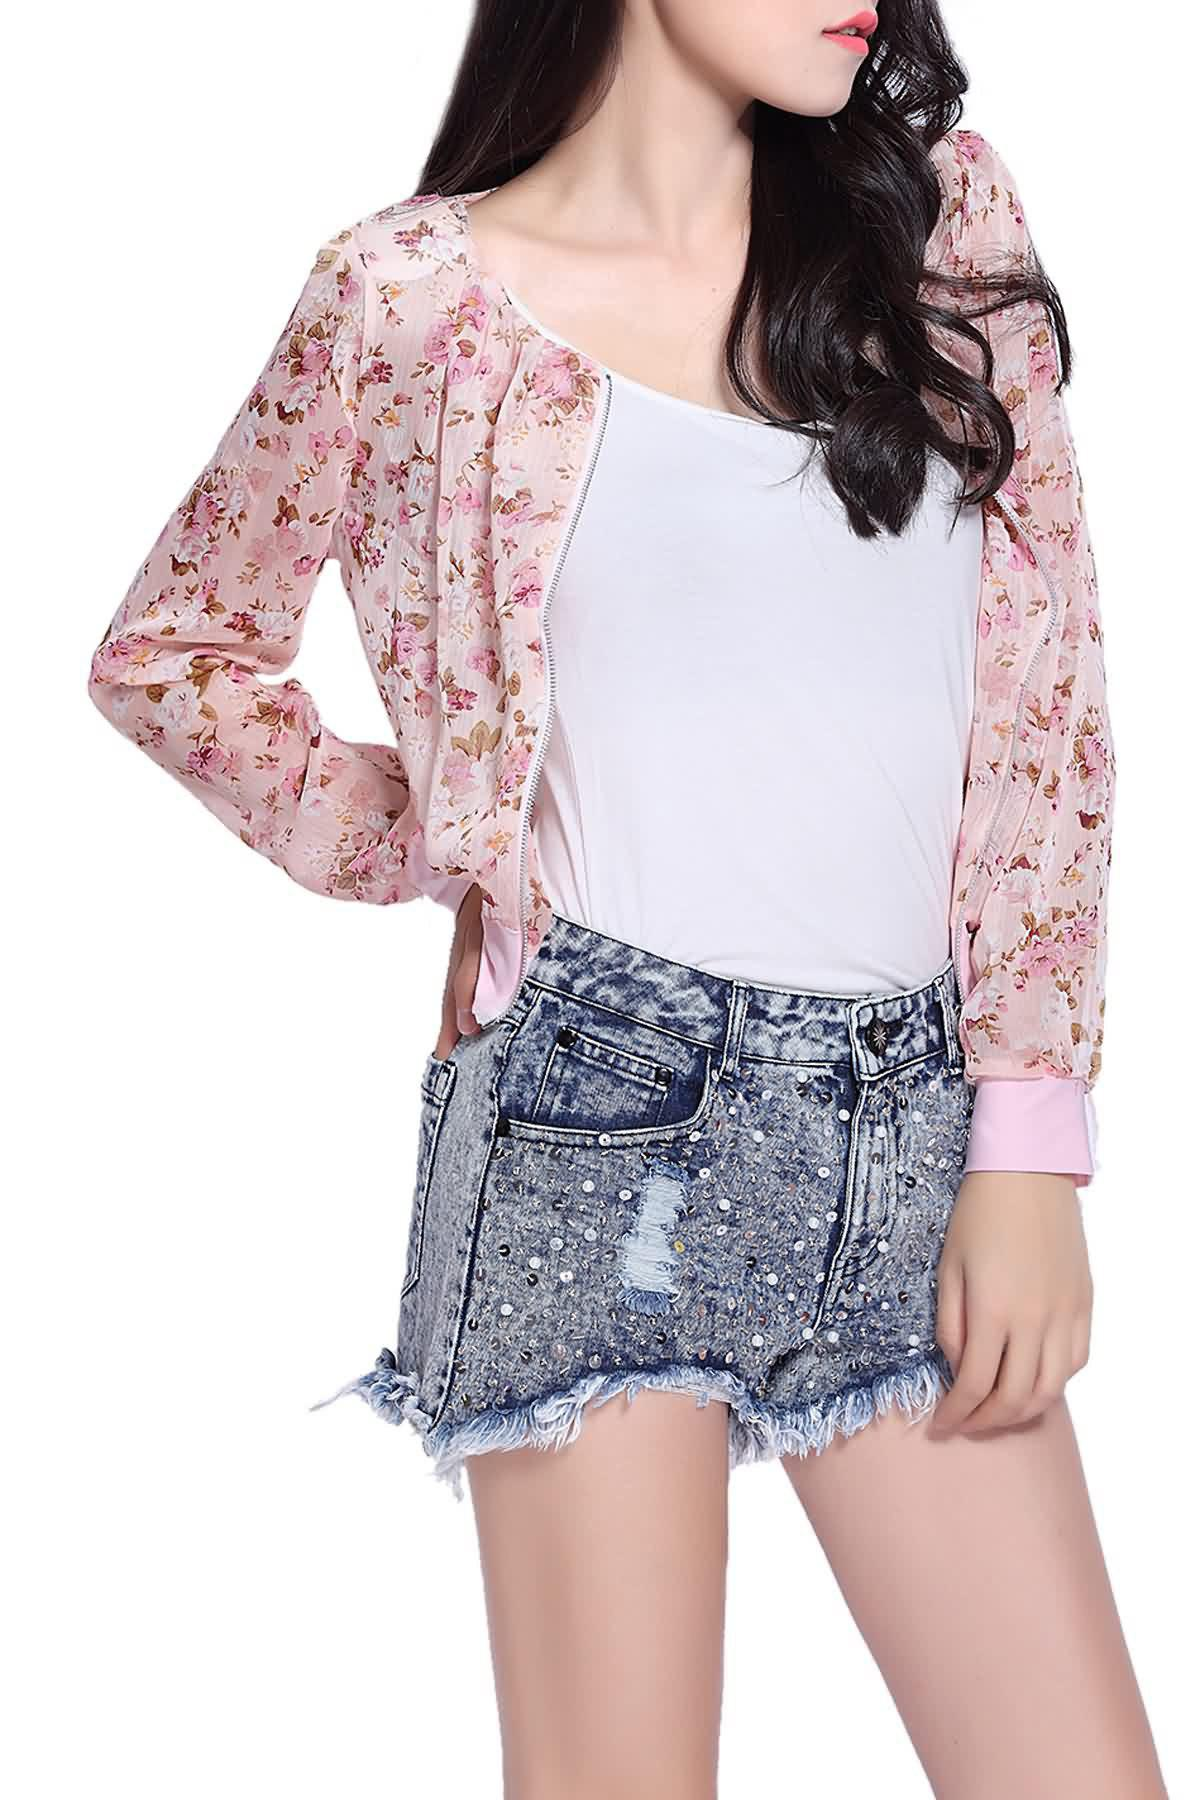 Stunning Scoop Neck Long Sleeves Floral Print Shrug Style Chiffon Women's Jacket - PINK ONE SIZE